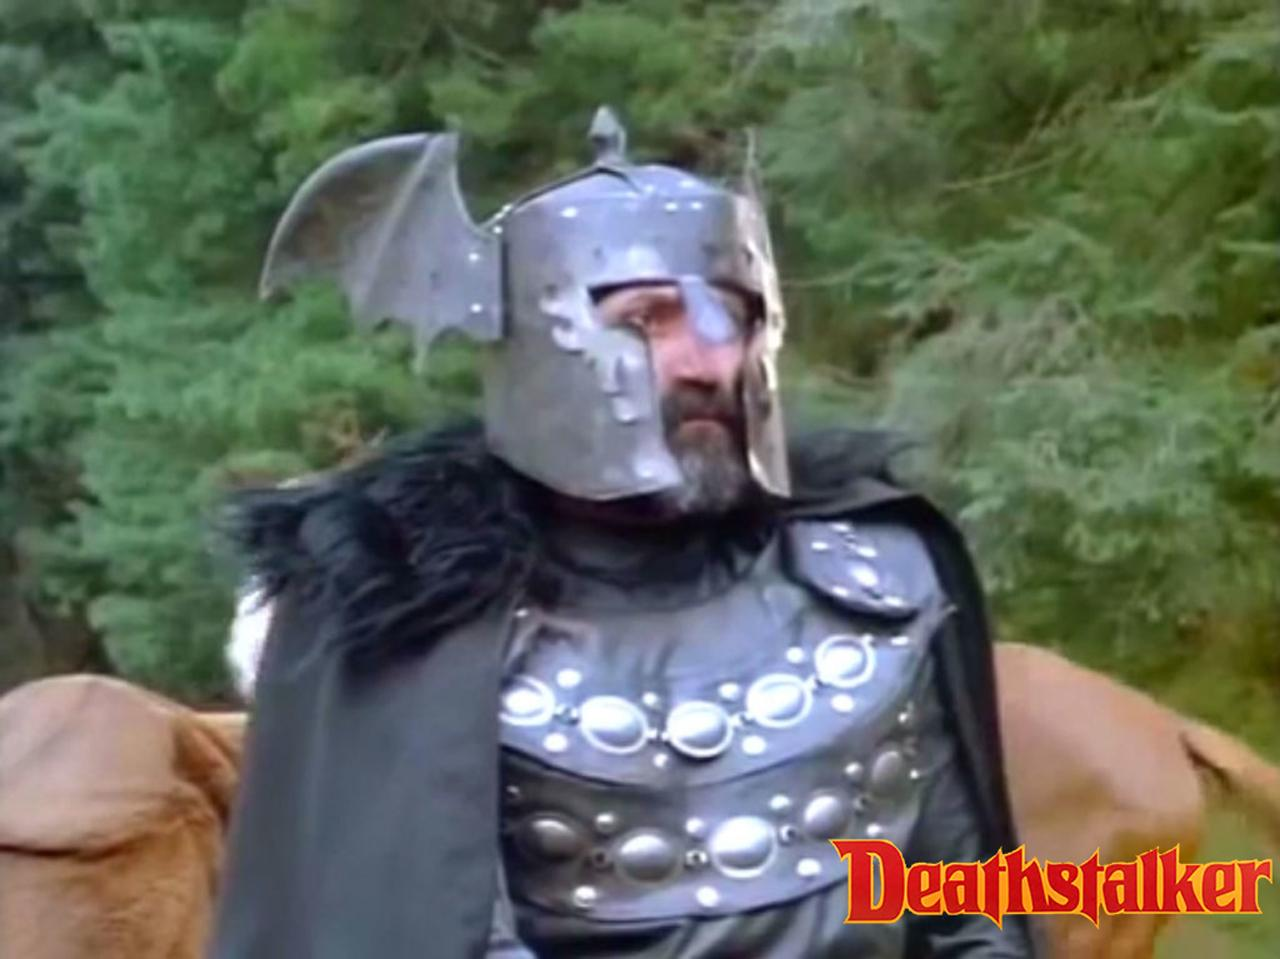 Agustín Salvat as Makut in the sword-and-sorcery film Deathstalker III: The Warriors from Hell